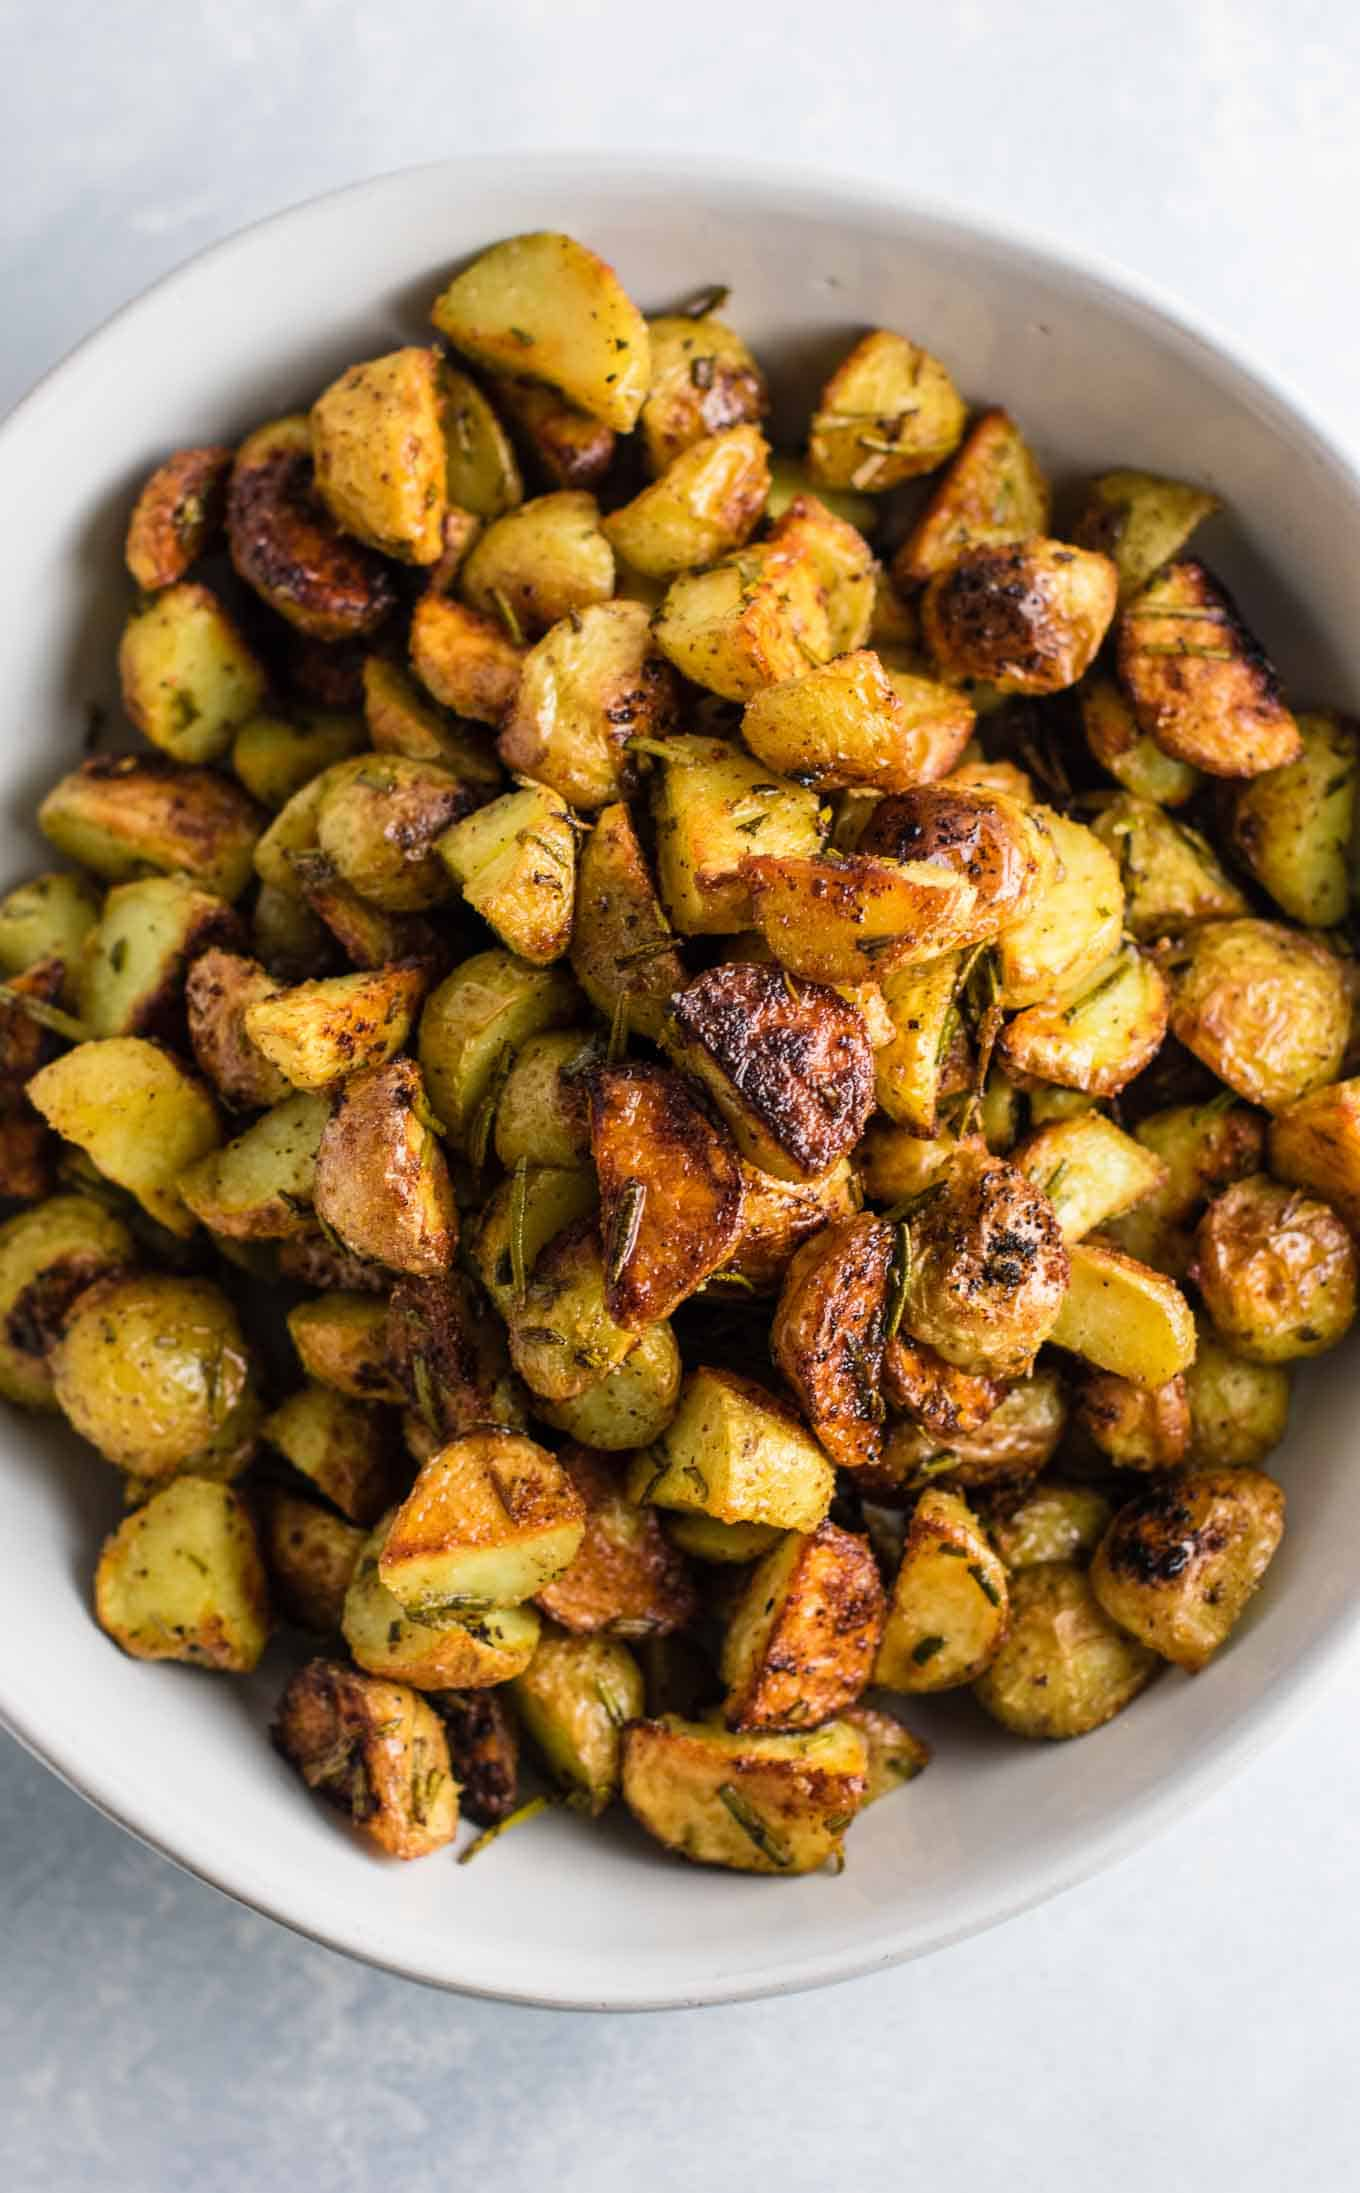 Rosemary Roasted Potatoes Recipe - Build Your Bite